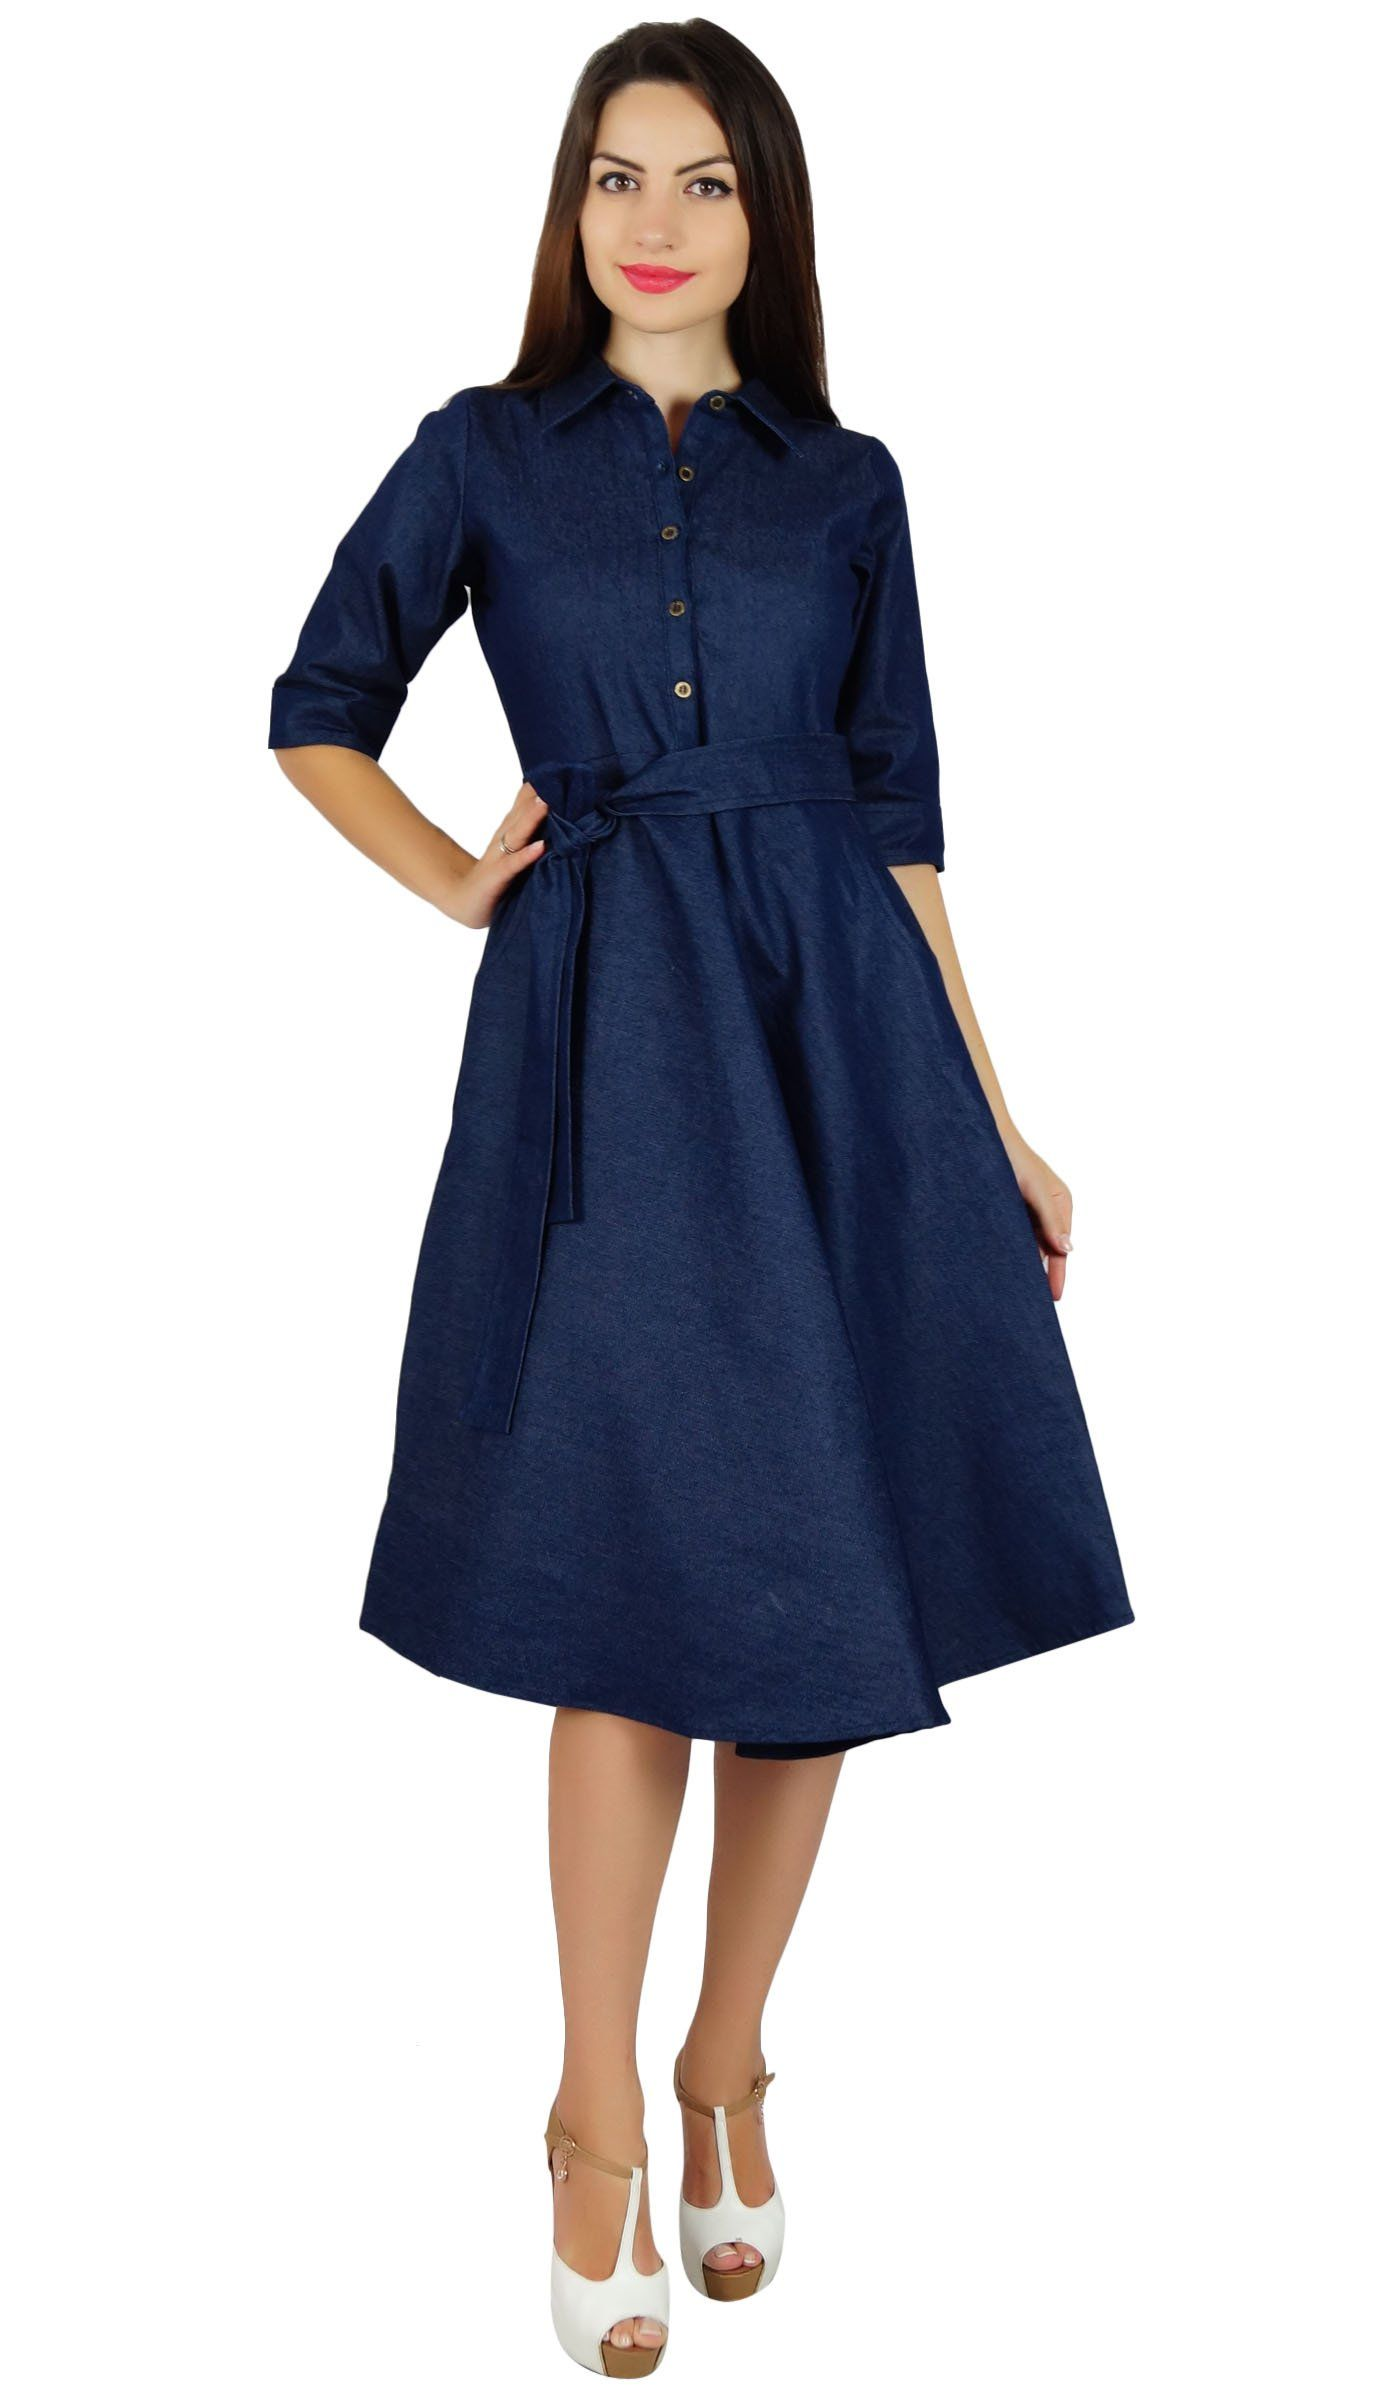 f73a2788fb5 Bimba Womens Blue Denim Shirt Dress With Pockets 3 4 Sleeve Casual Midi  Dresses   See this great product. (Note Amazon affiliate link)